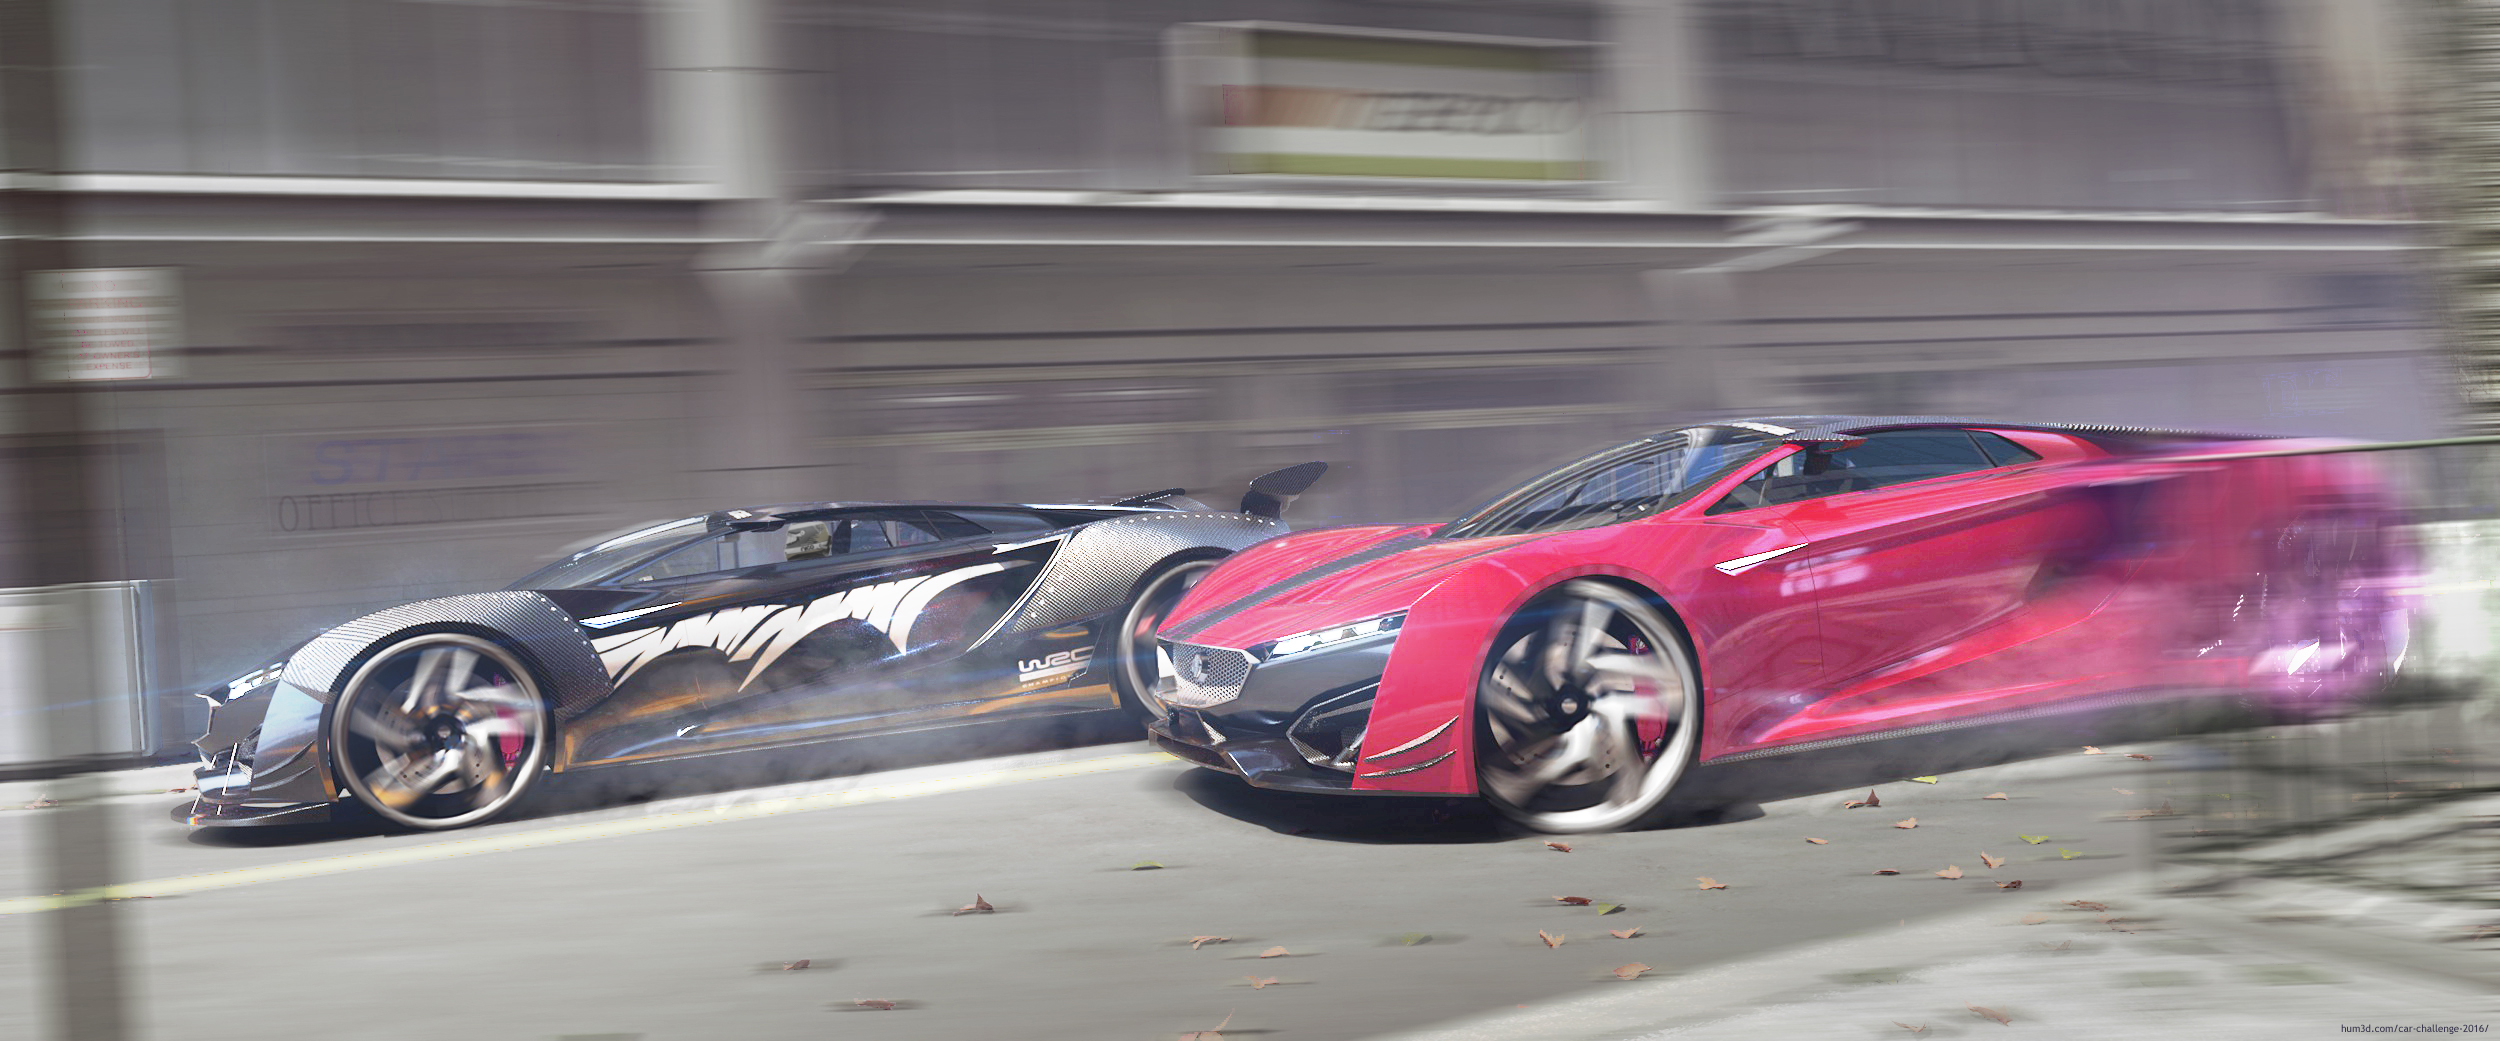 Concept car rendering 3d art